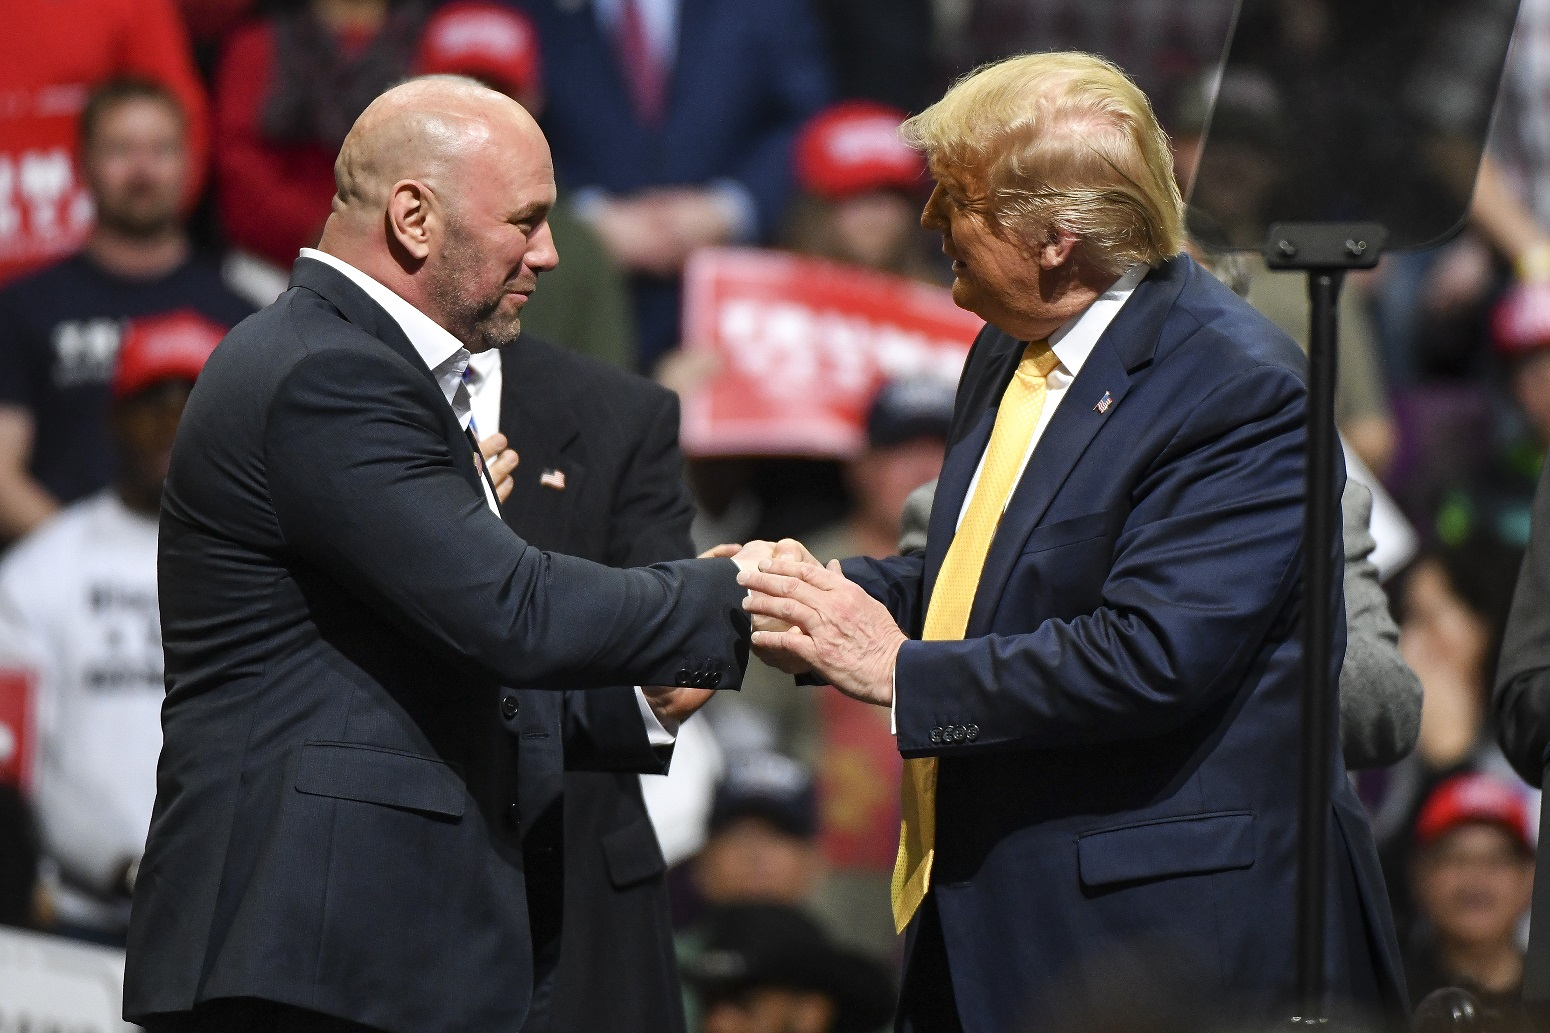 Donald Trump Just Got the Ultimate Support from Dana White